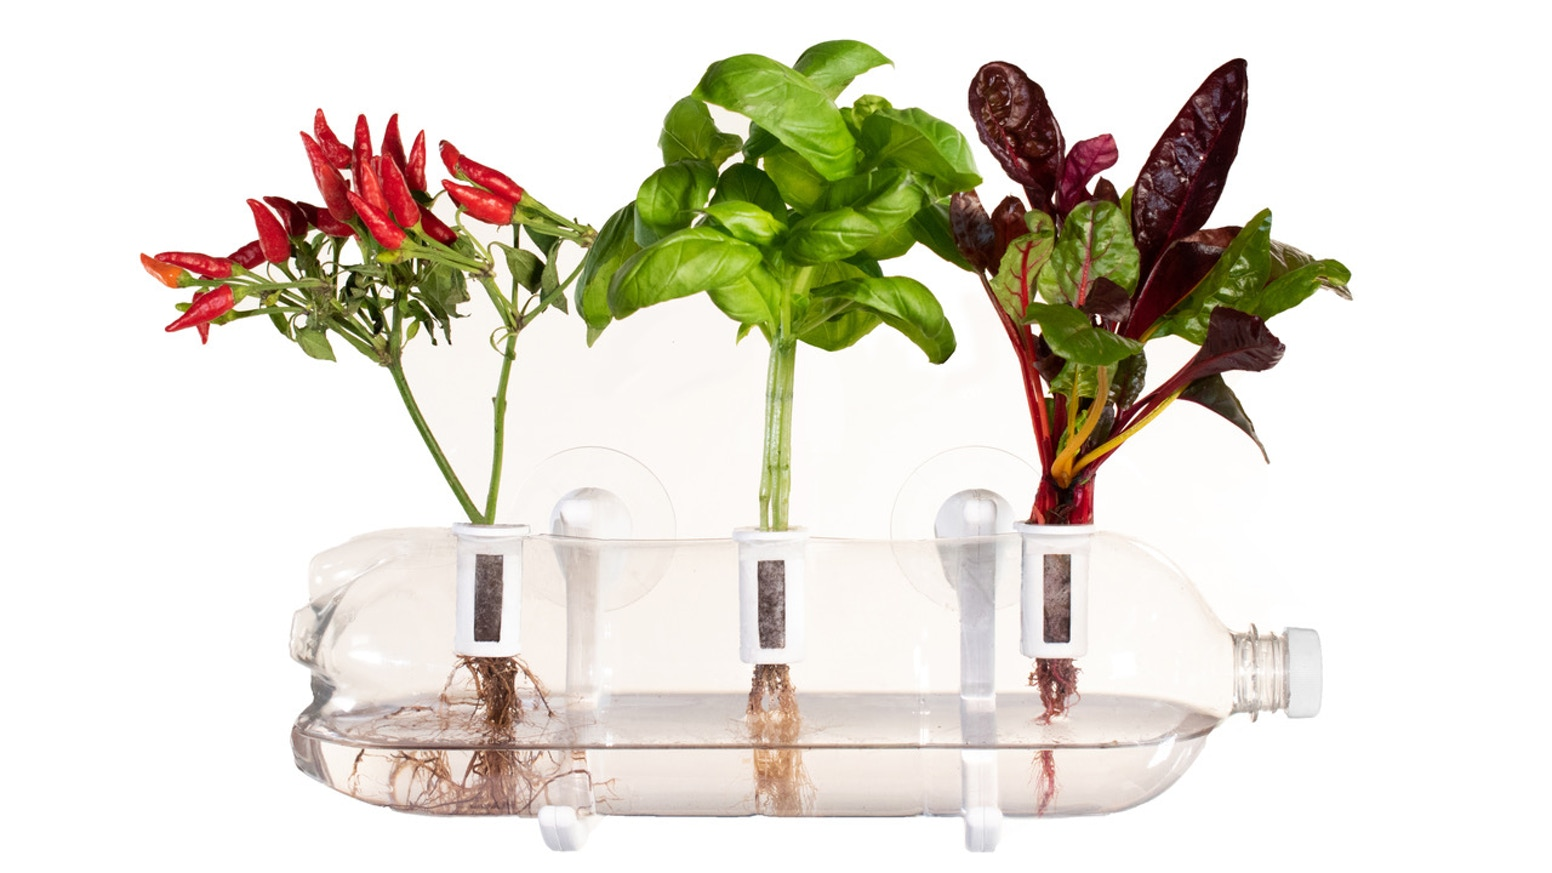 The kit that turns any used plastic bottle into a beautiful indoor farm